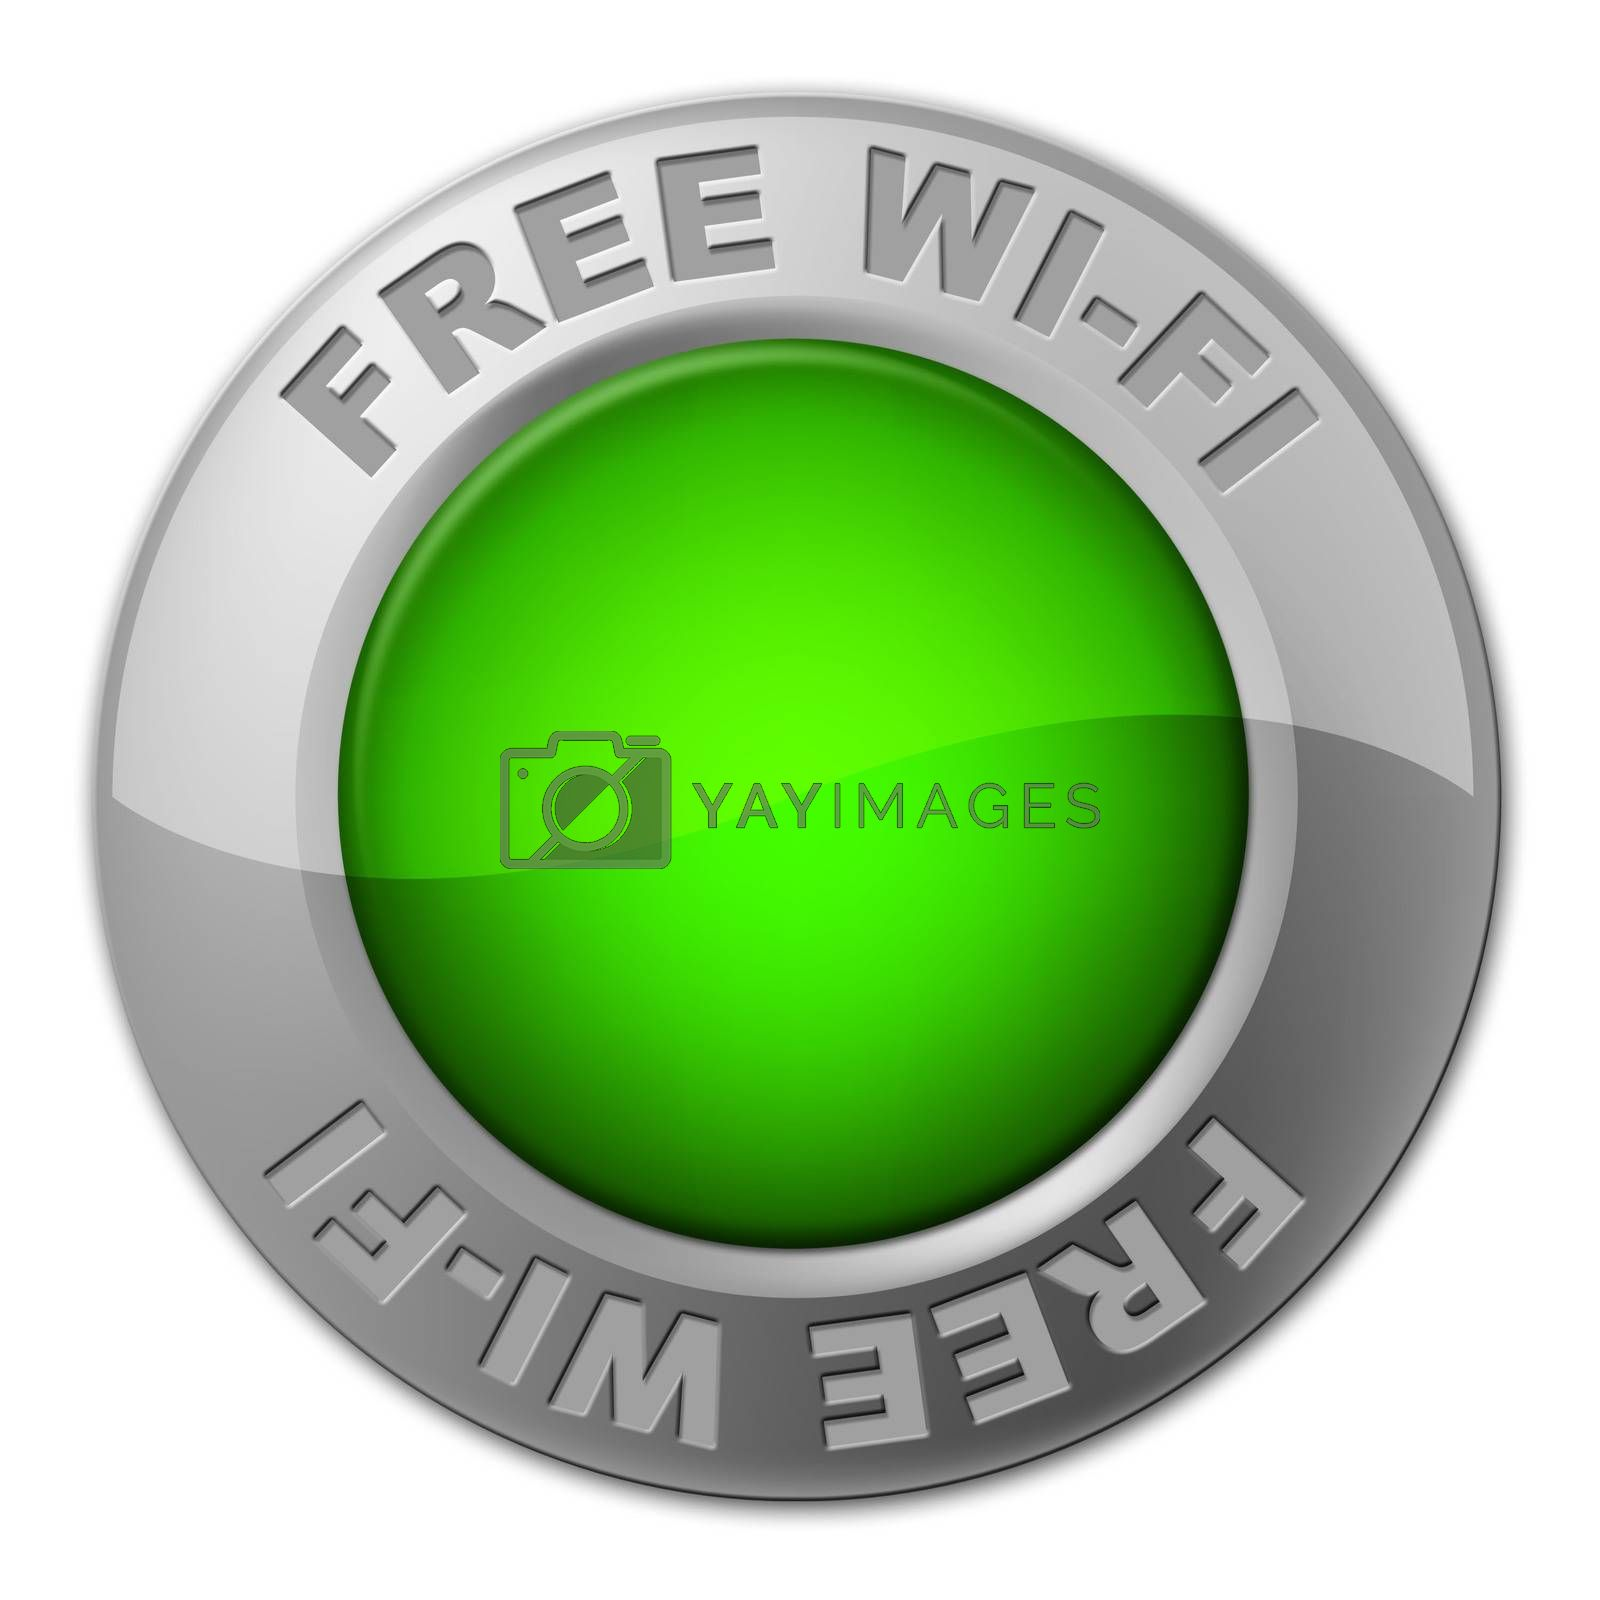 Free Wifi Button Shows With Our Compliments And Access by stuartmiles